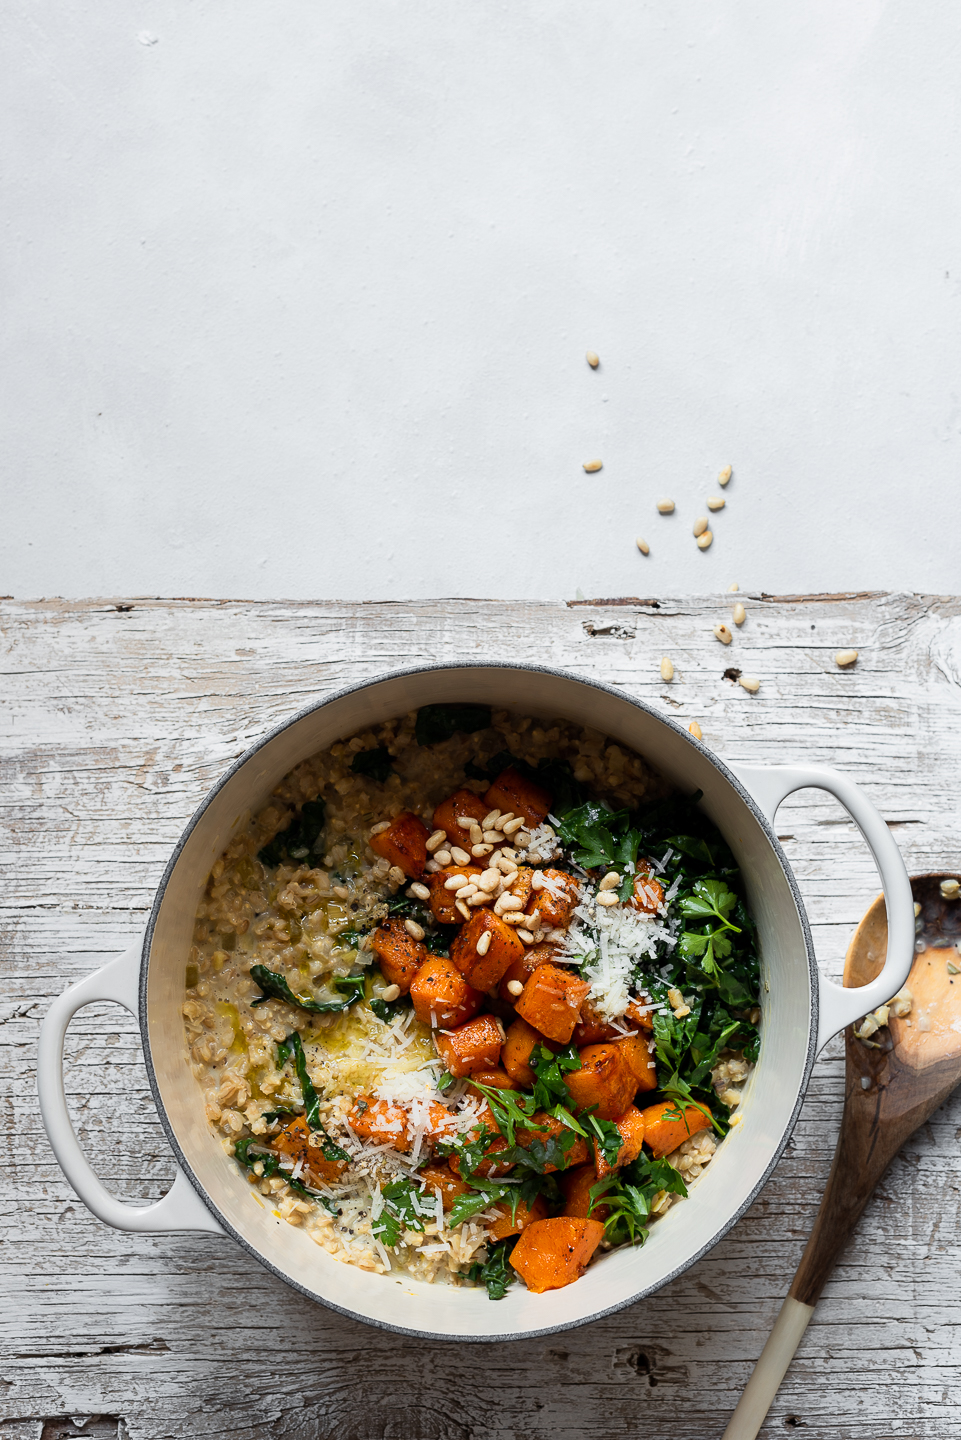 Barley risotto with kale and butternut